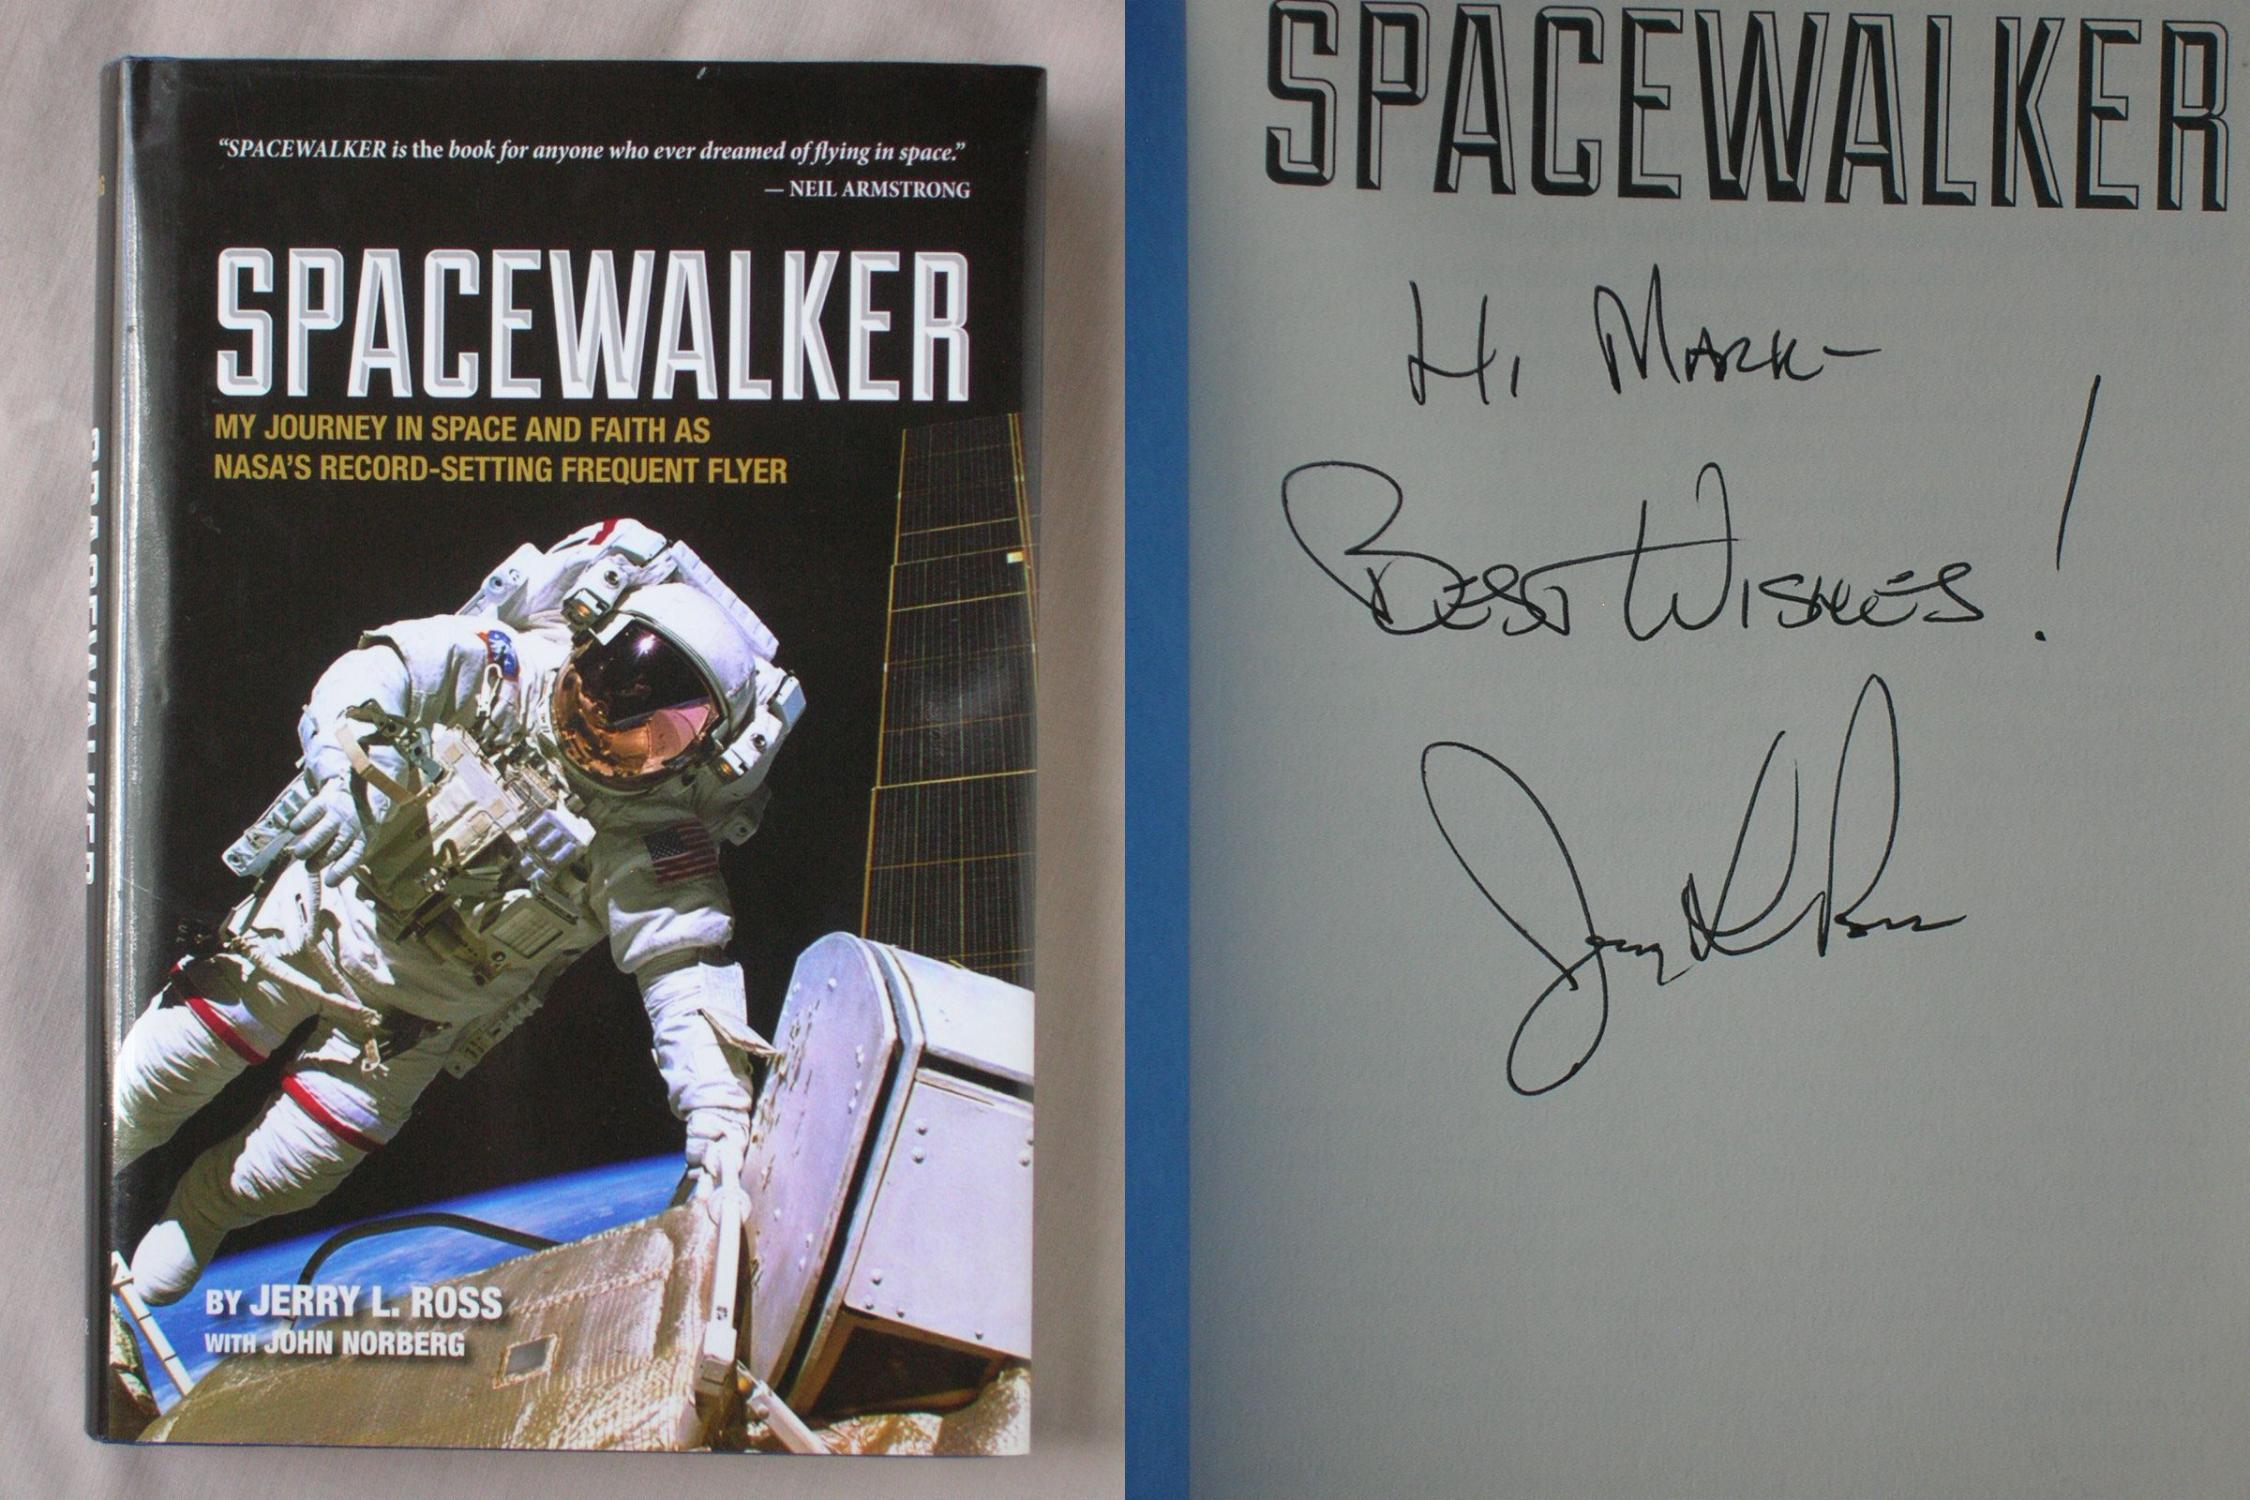 Spacewalker : my journey in space and faith as NASAs record-setting frequent flyer